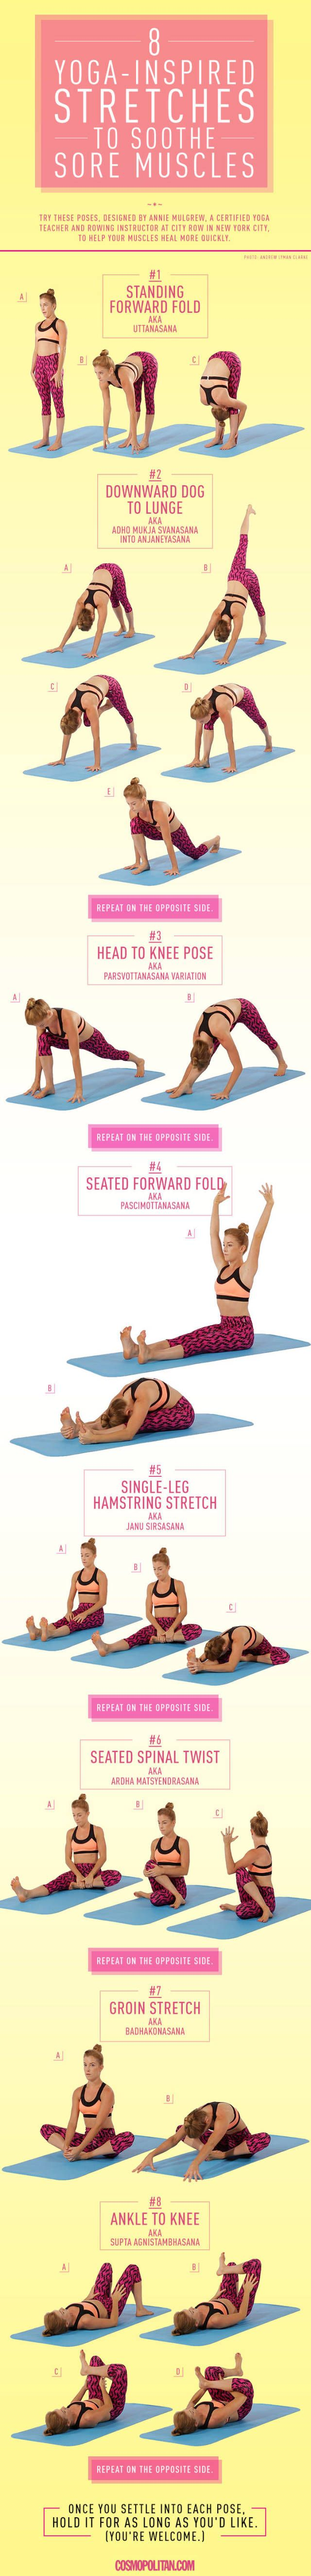 8 Yoga-Inspired Poses to Soothe Sore Muscles  26d915b5180e